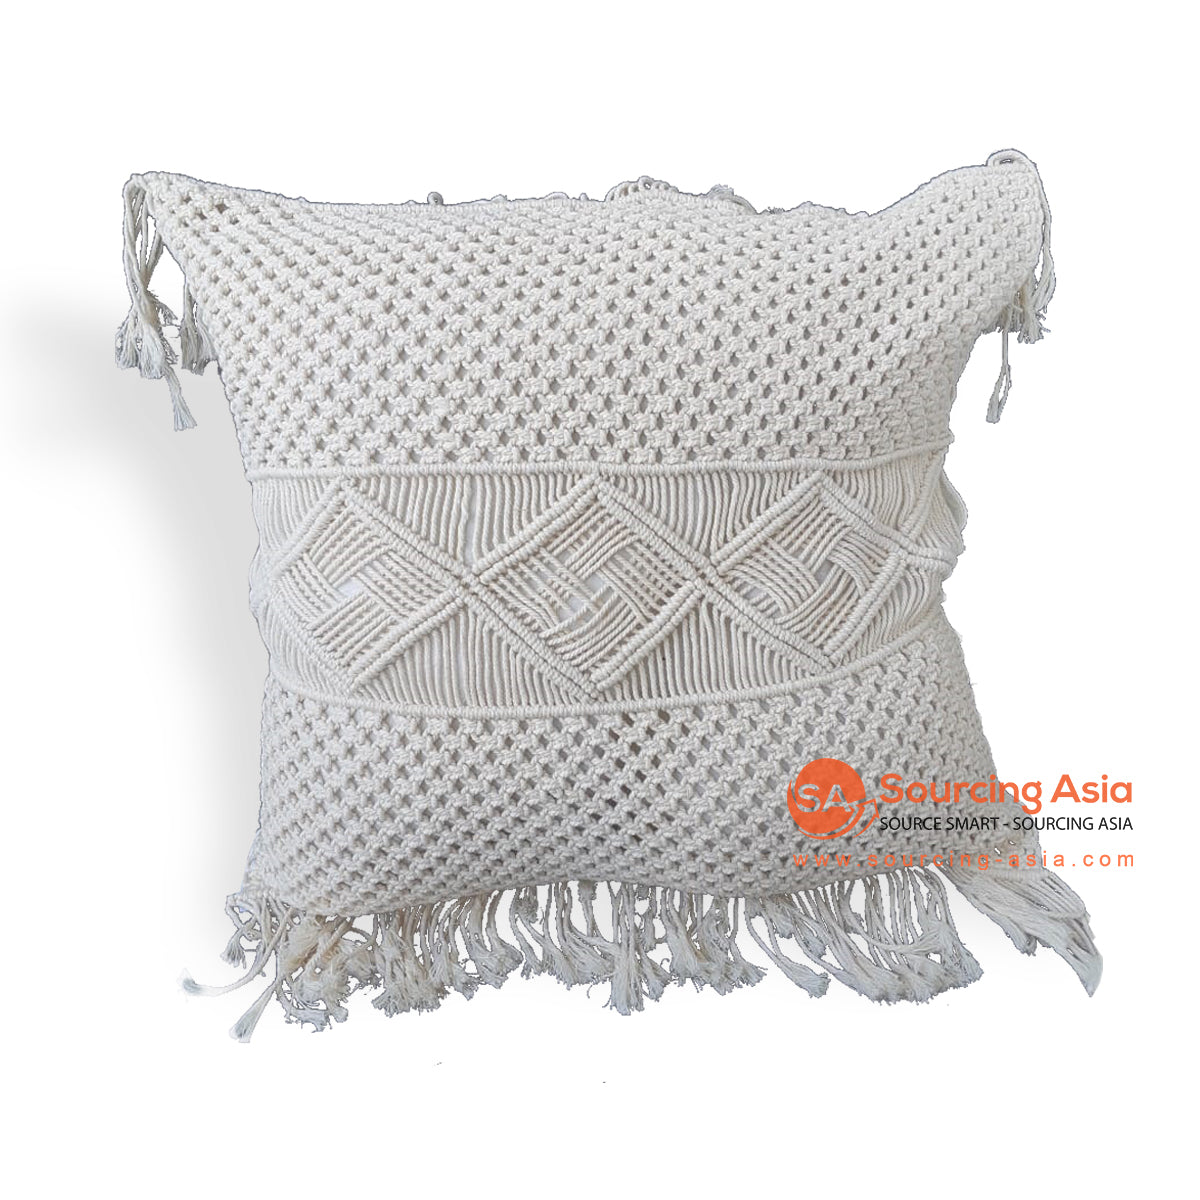 KHLV036 MACRAME CUSHION